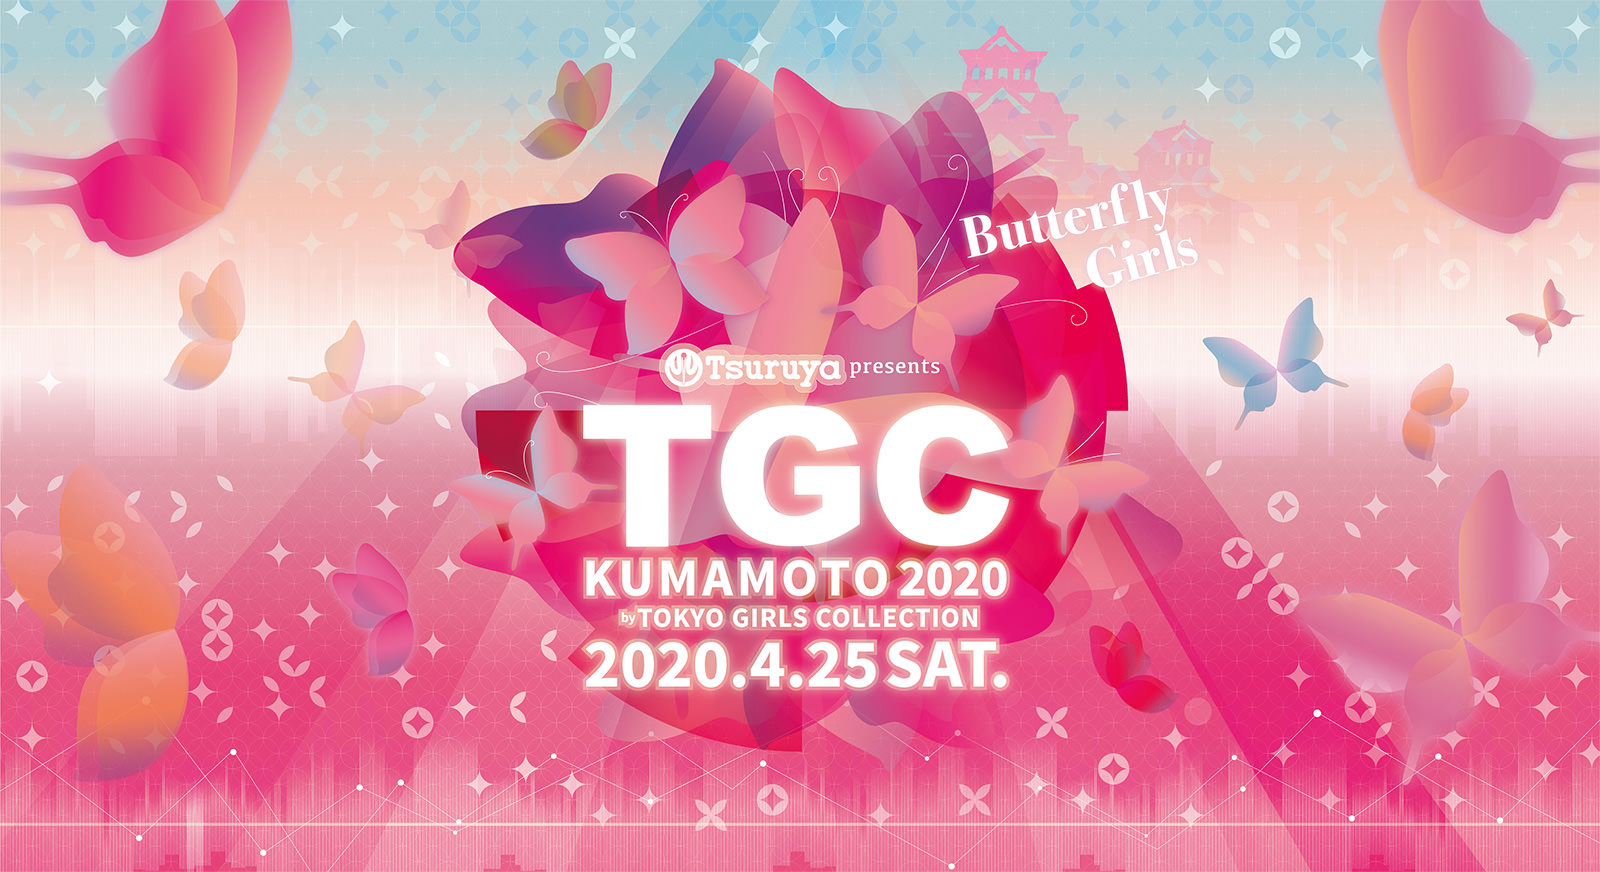 TGC KUMAMOTO 2020 by TOKYO GIRLS COLLECTION